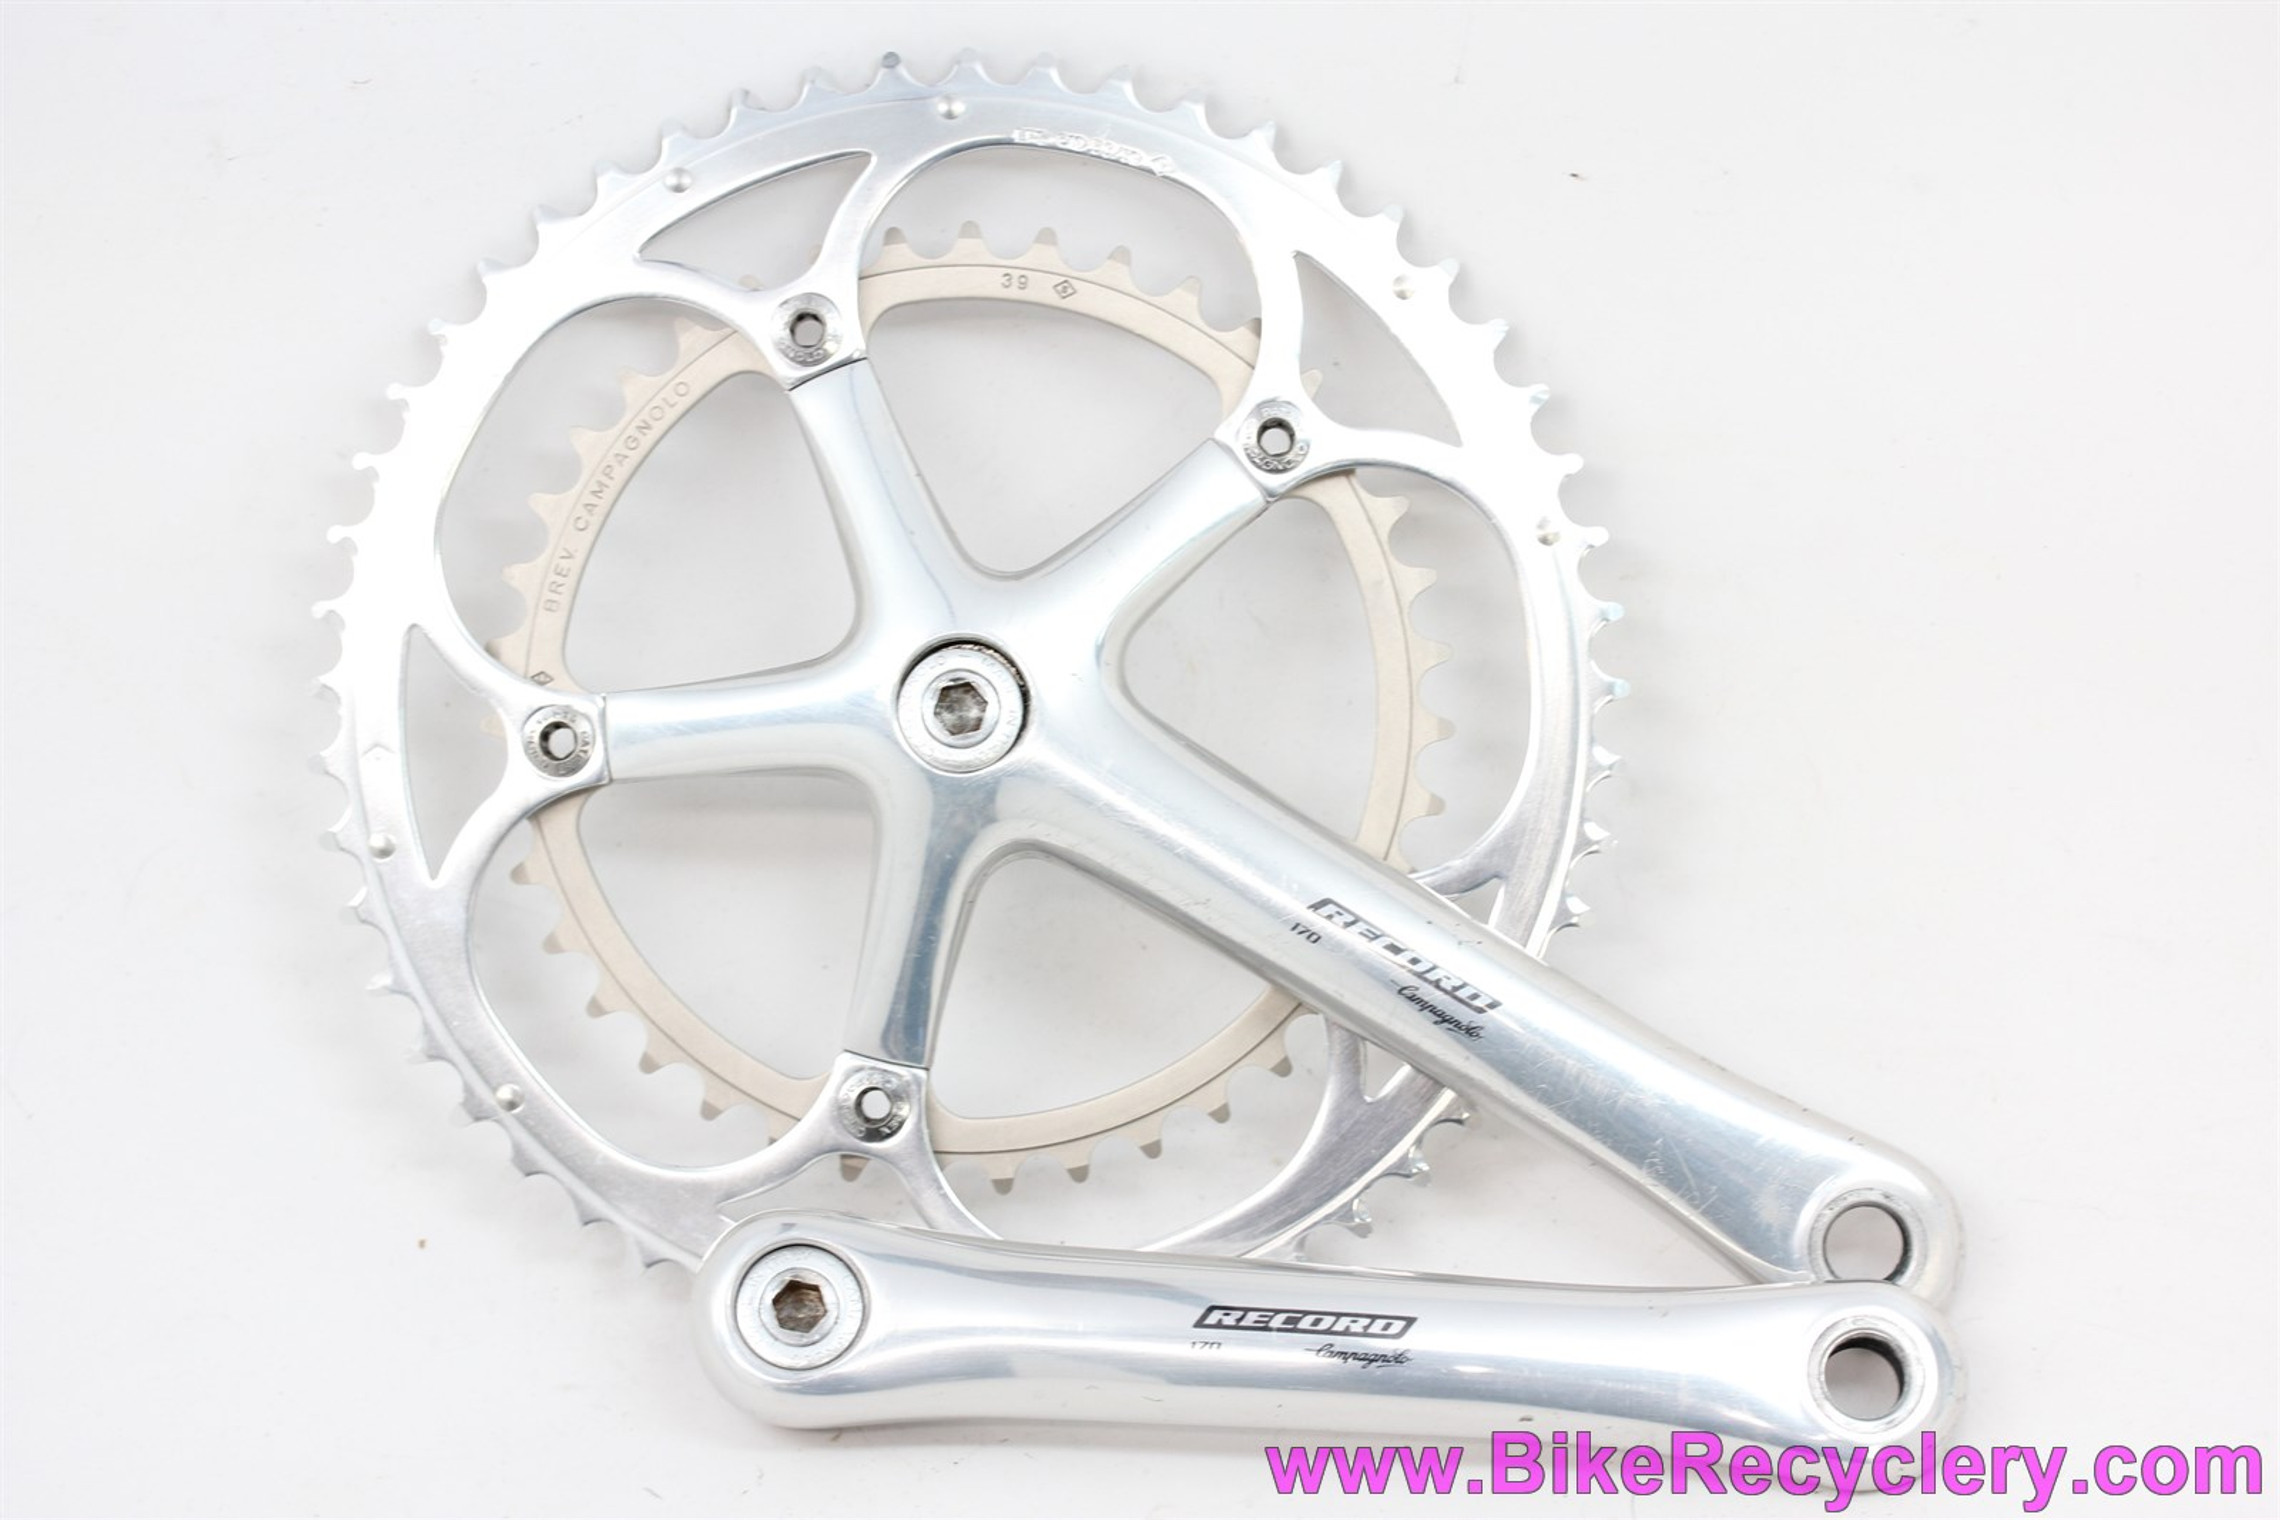 Campagnolo Record 10 Speed Crankset: 170mm - NOS 53/39t Chainrings - Silver - Square Taper (EXC)